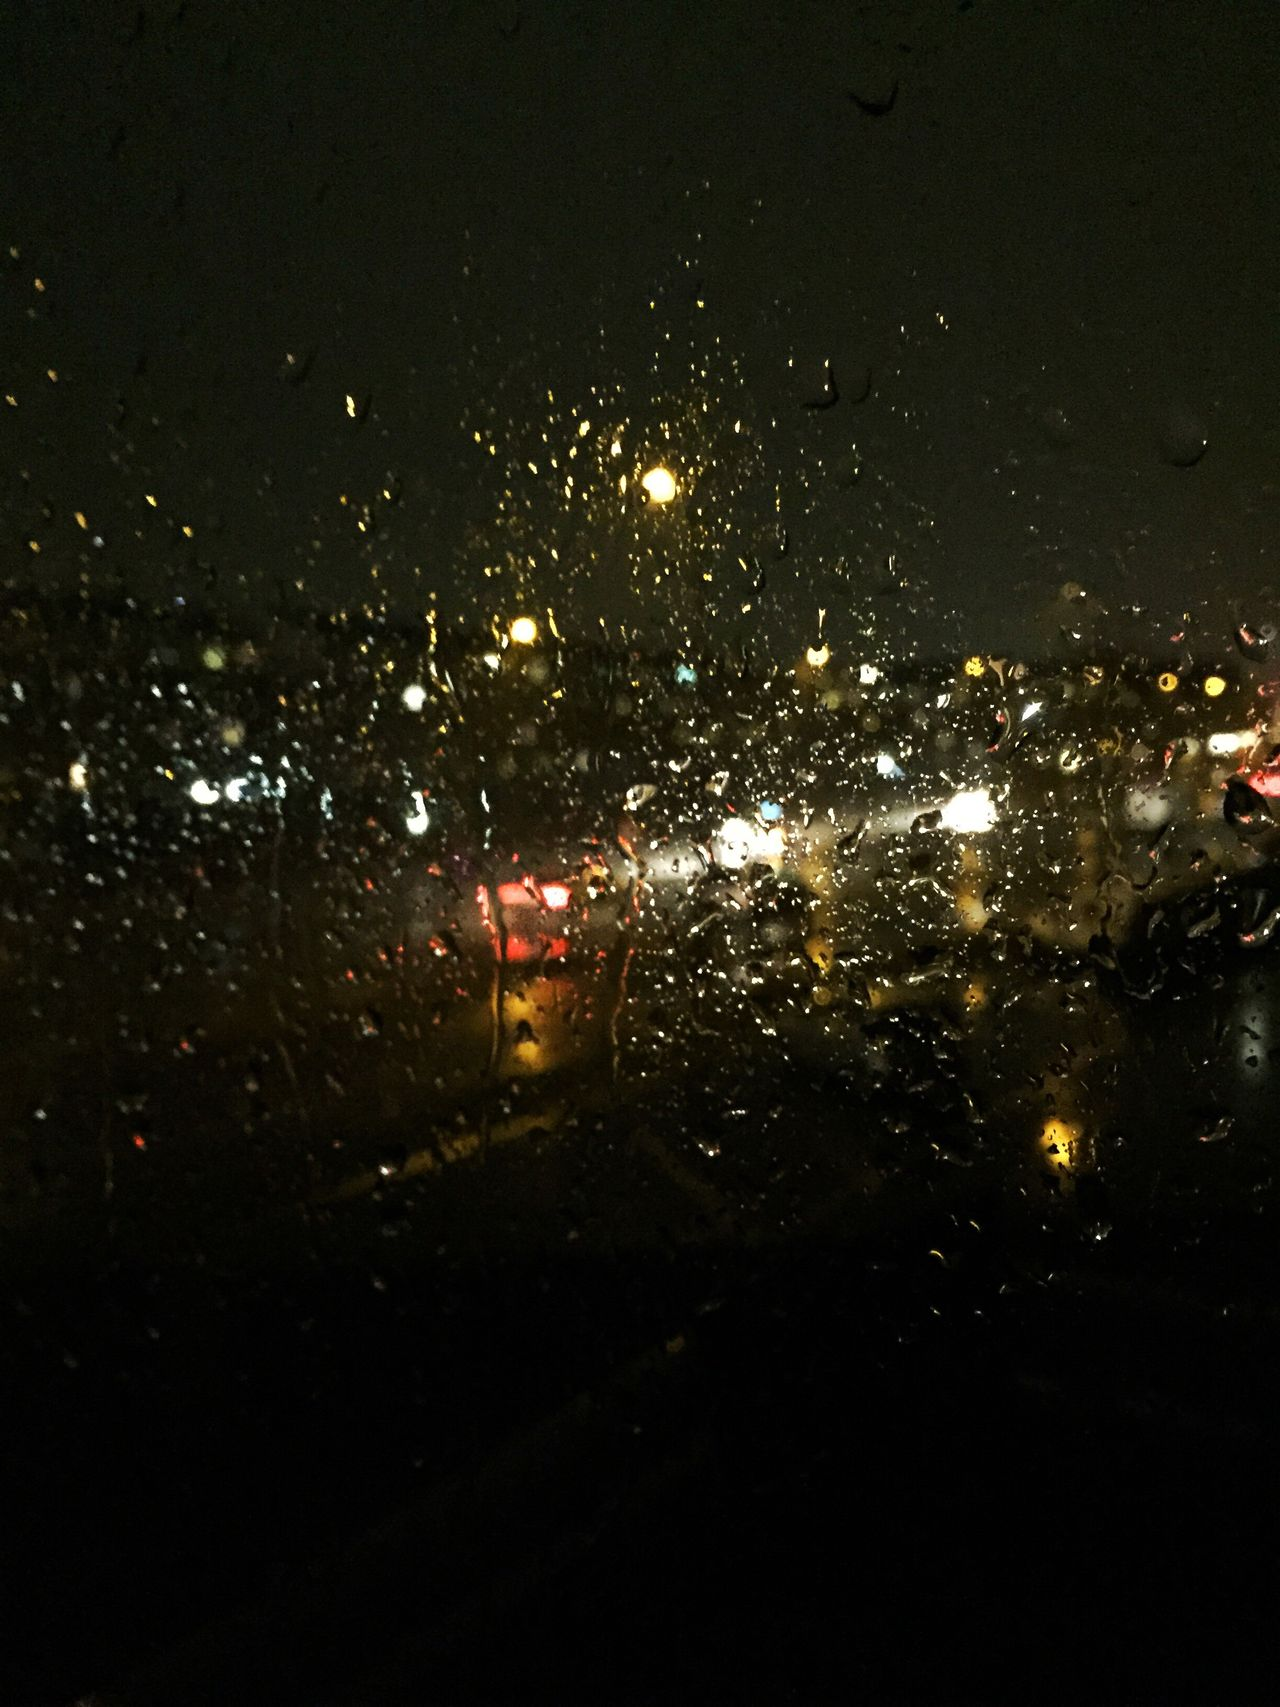 Rain Wet Car Water Rainy Season Weather Drop RainDrop Road Night Torrential Rain Rainfall Illuminated No People Close-up Raindrops On My Window Copy Space Night Night Lights Iphone6